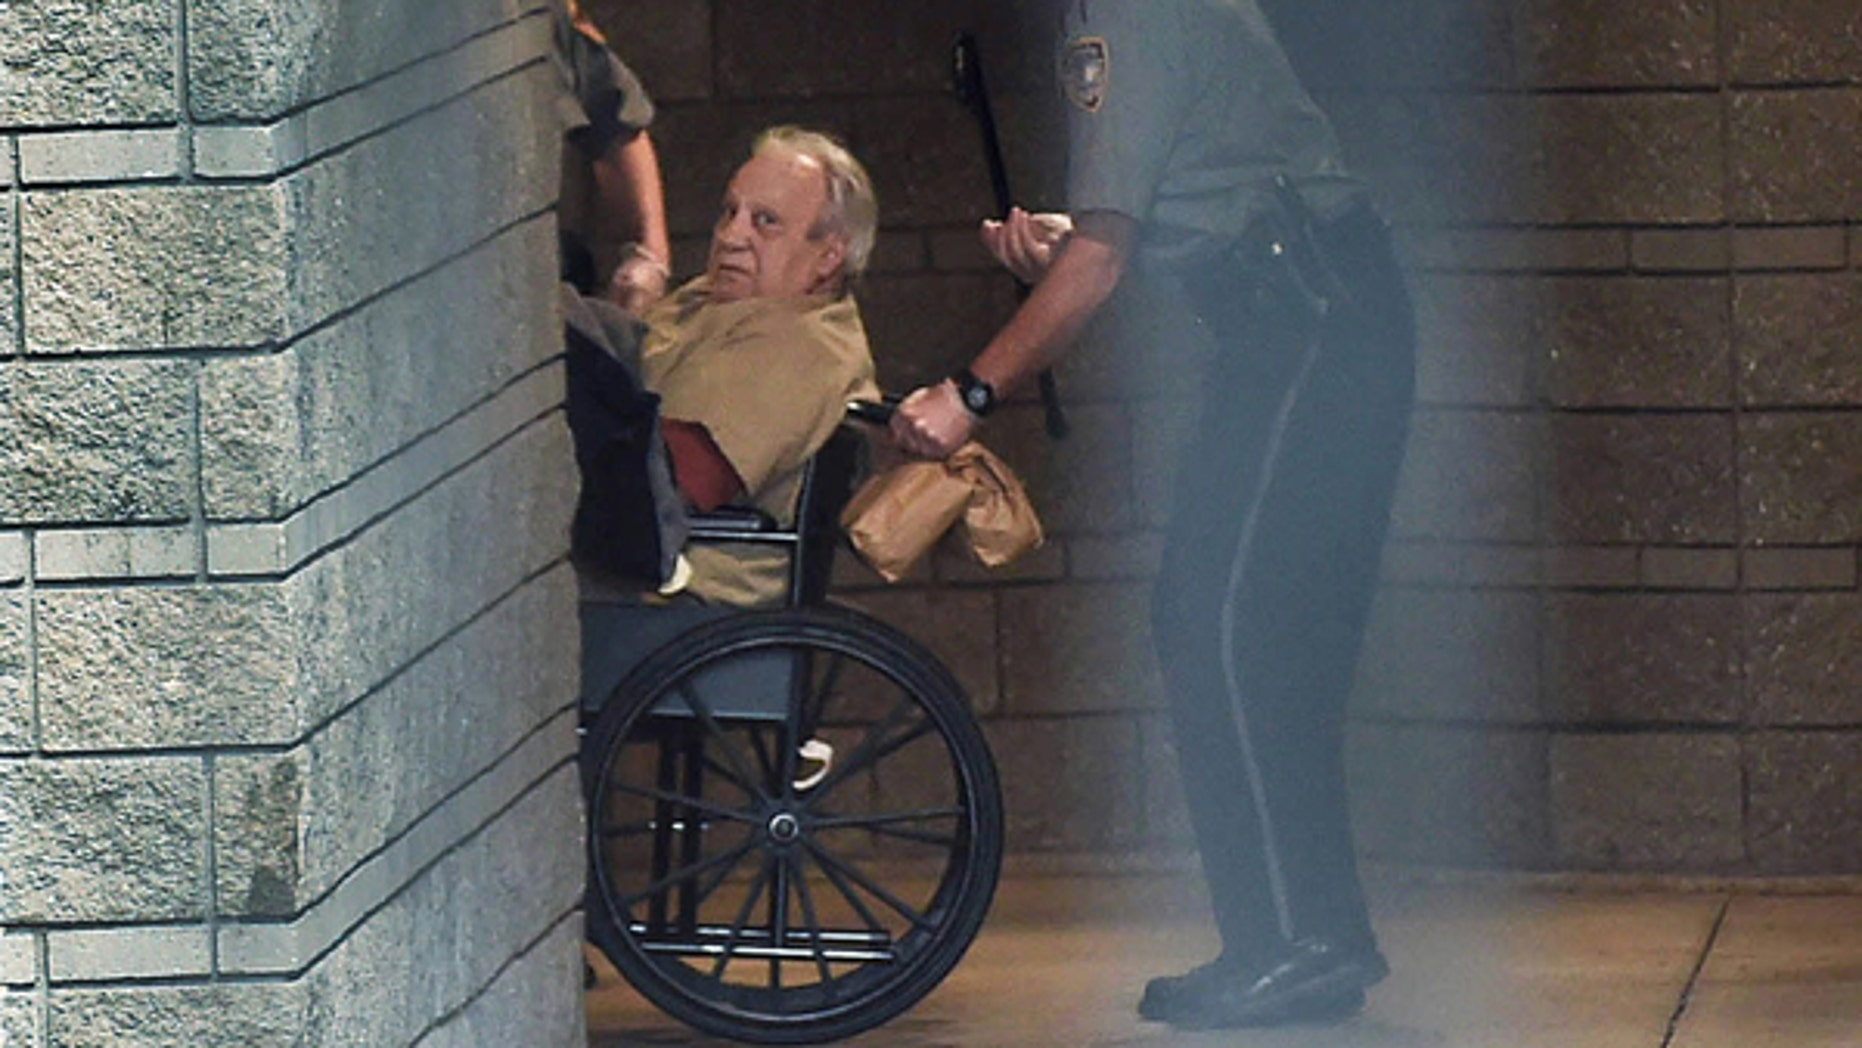 Robert Gentile is brought into the federal courthouse in a wheelchair for a hearing in Hartford, Conn.